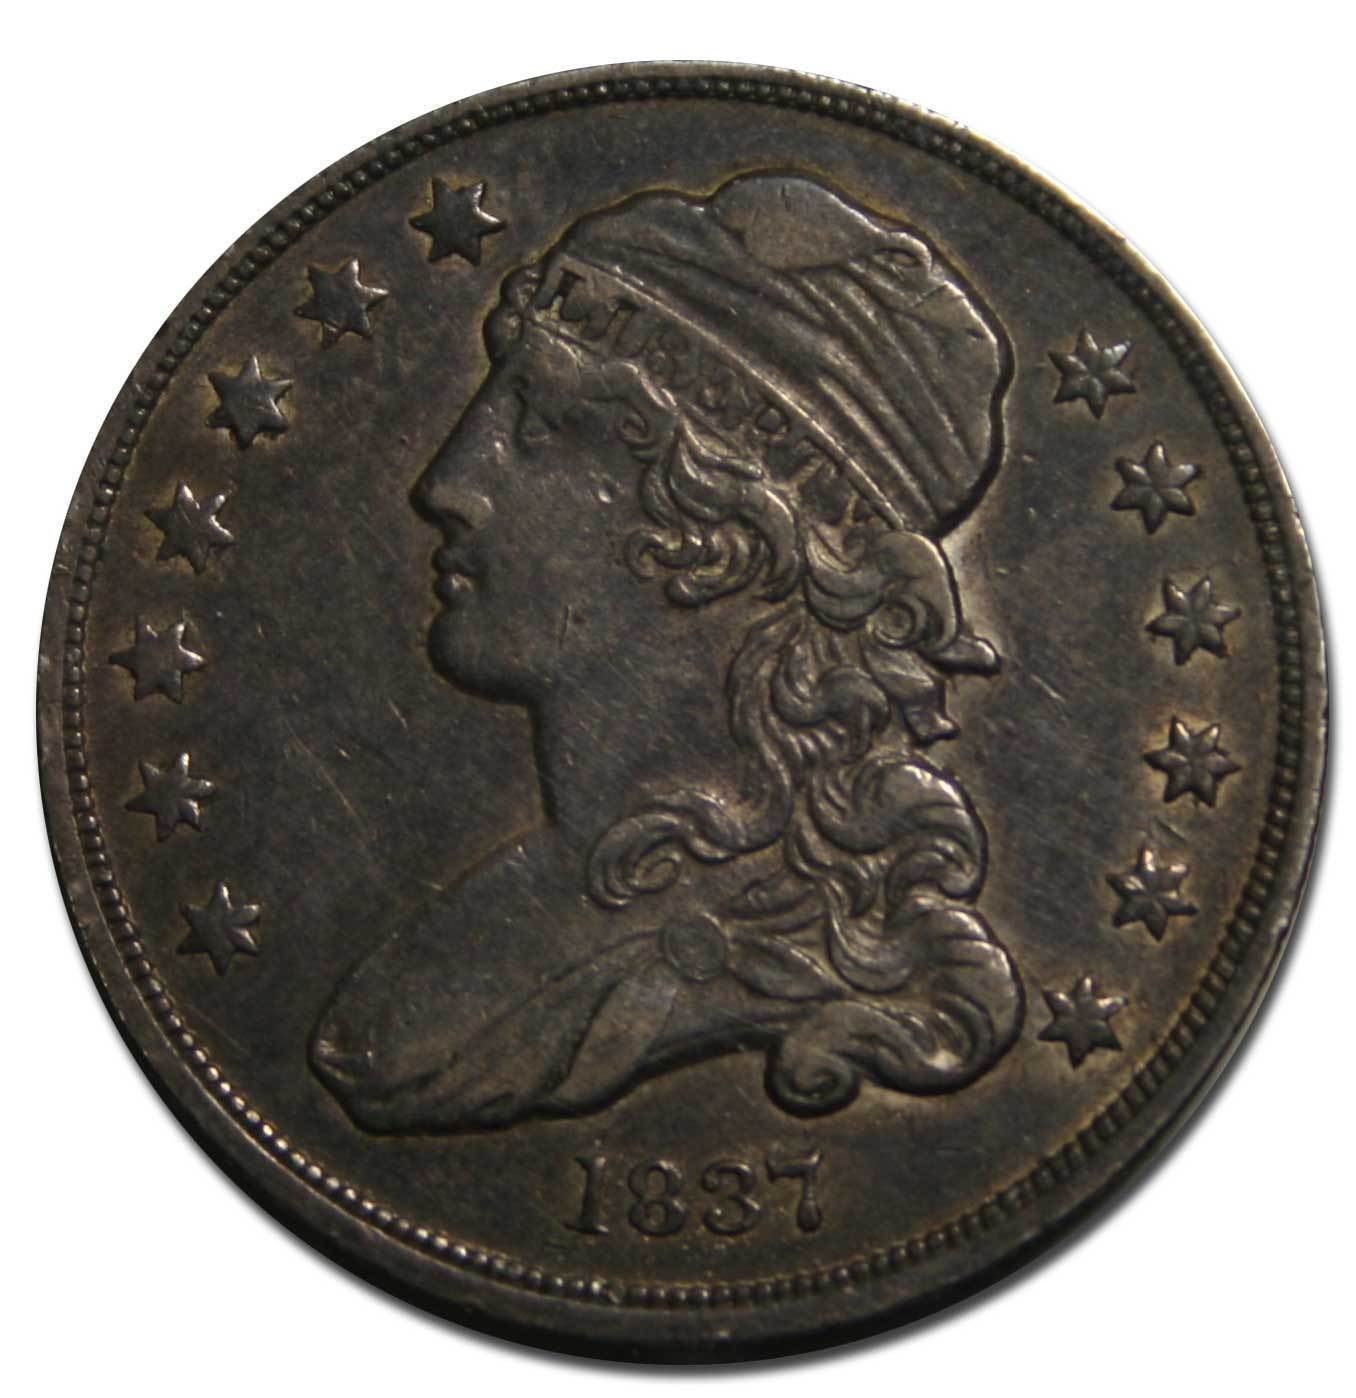 1837 Capped Bust Quarter Dollar 25¢ Coin Lot# MZ 4590